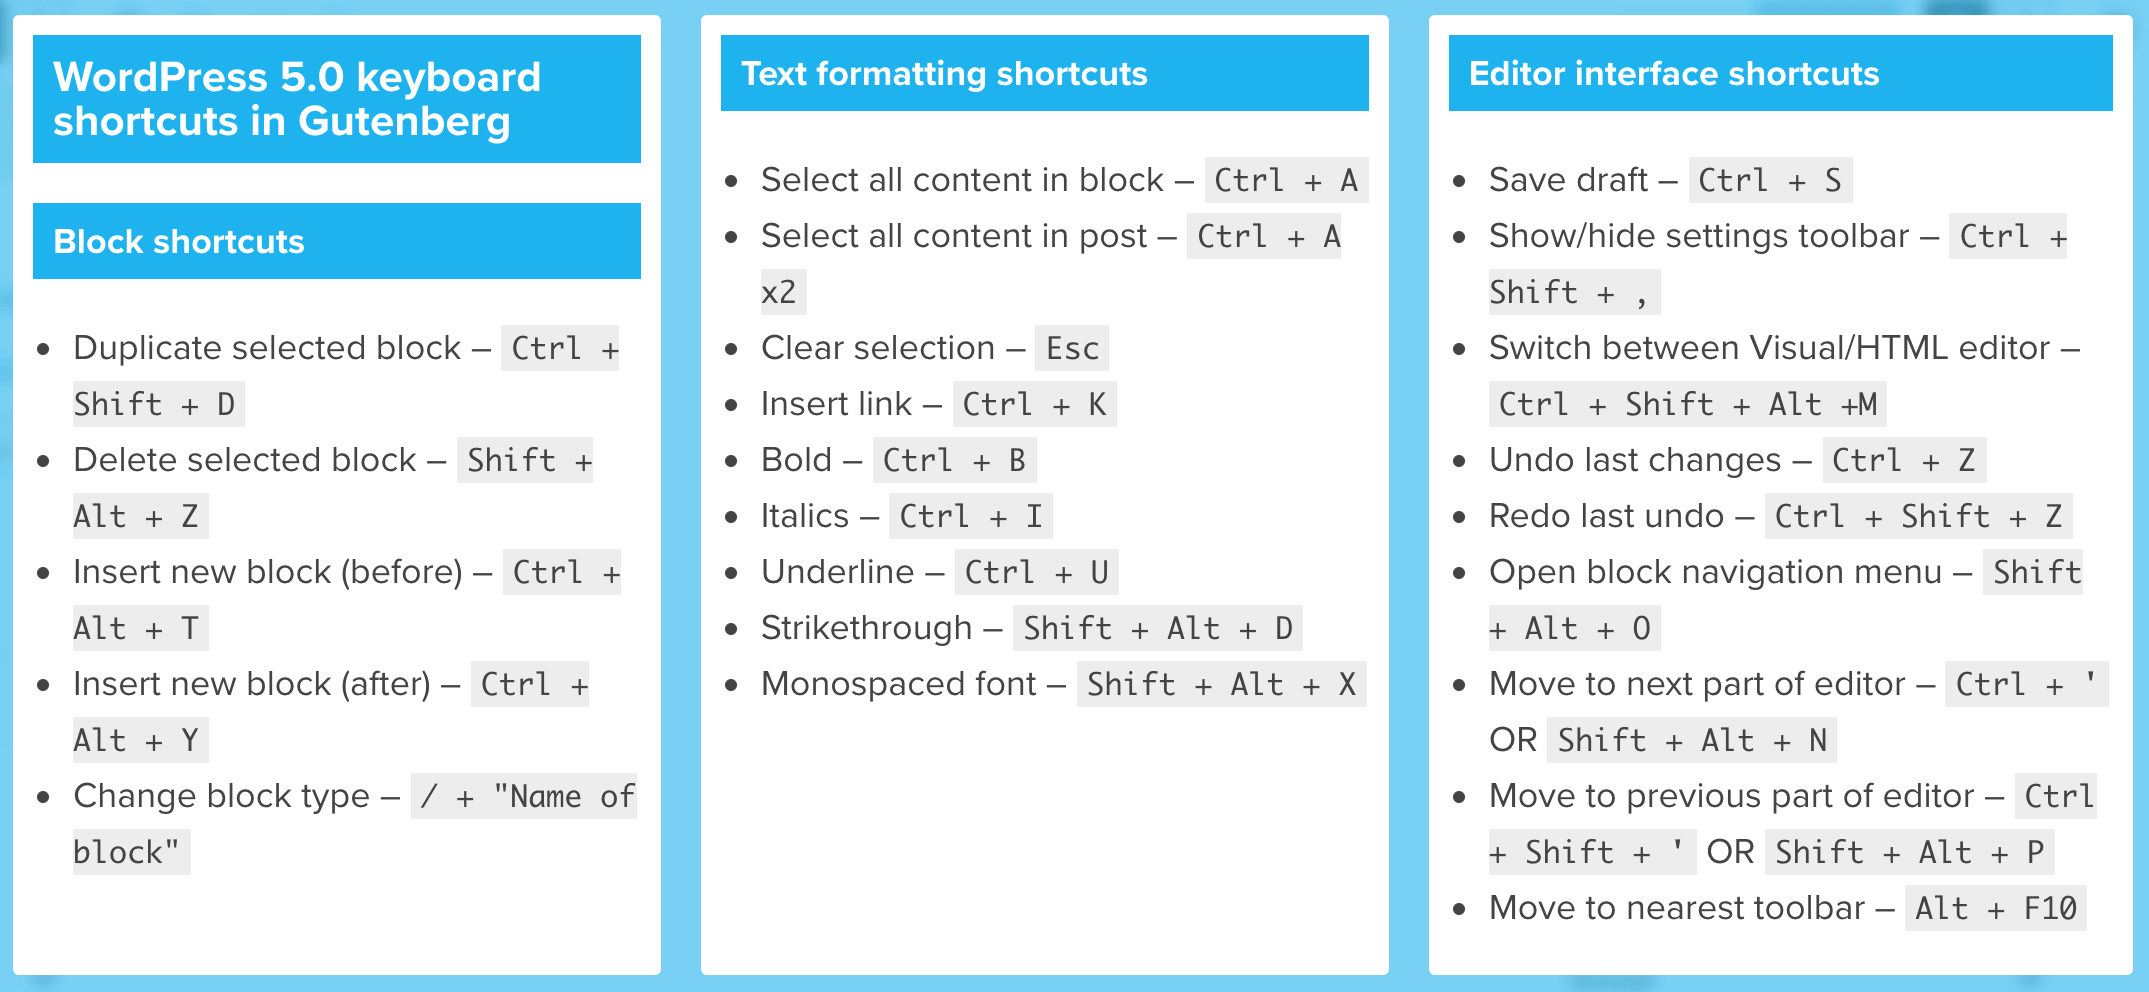 WordPress 5.0 Gutenberg shortcodes shortcuts Without Reading This First block editor StartBloggingPros.com